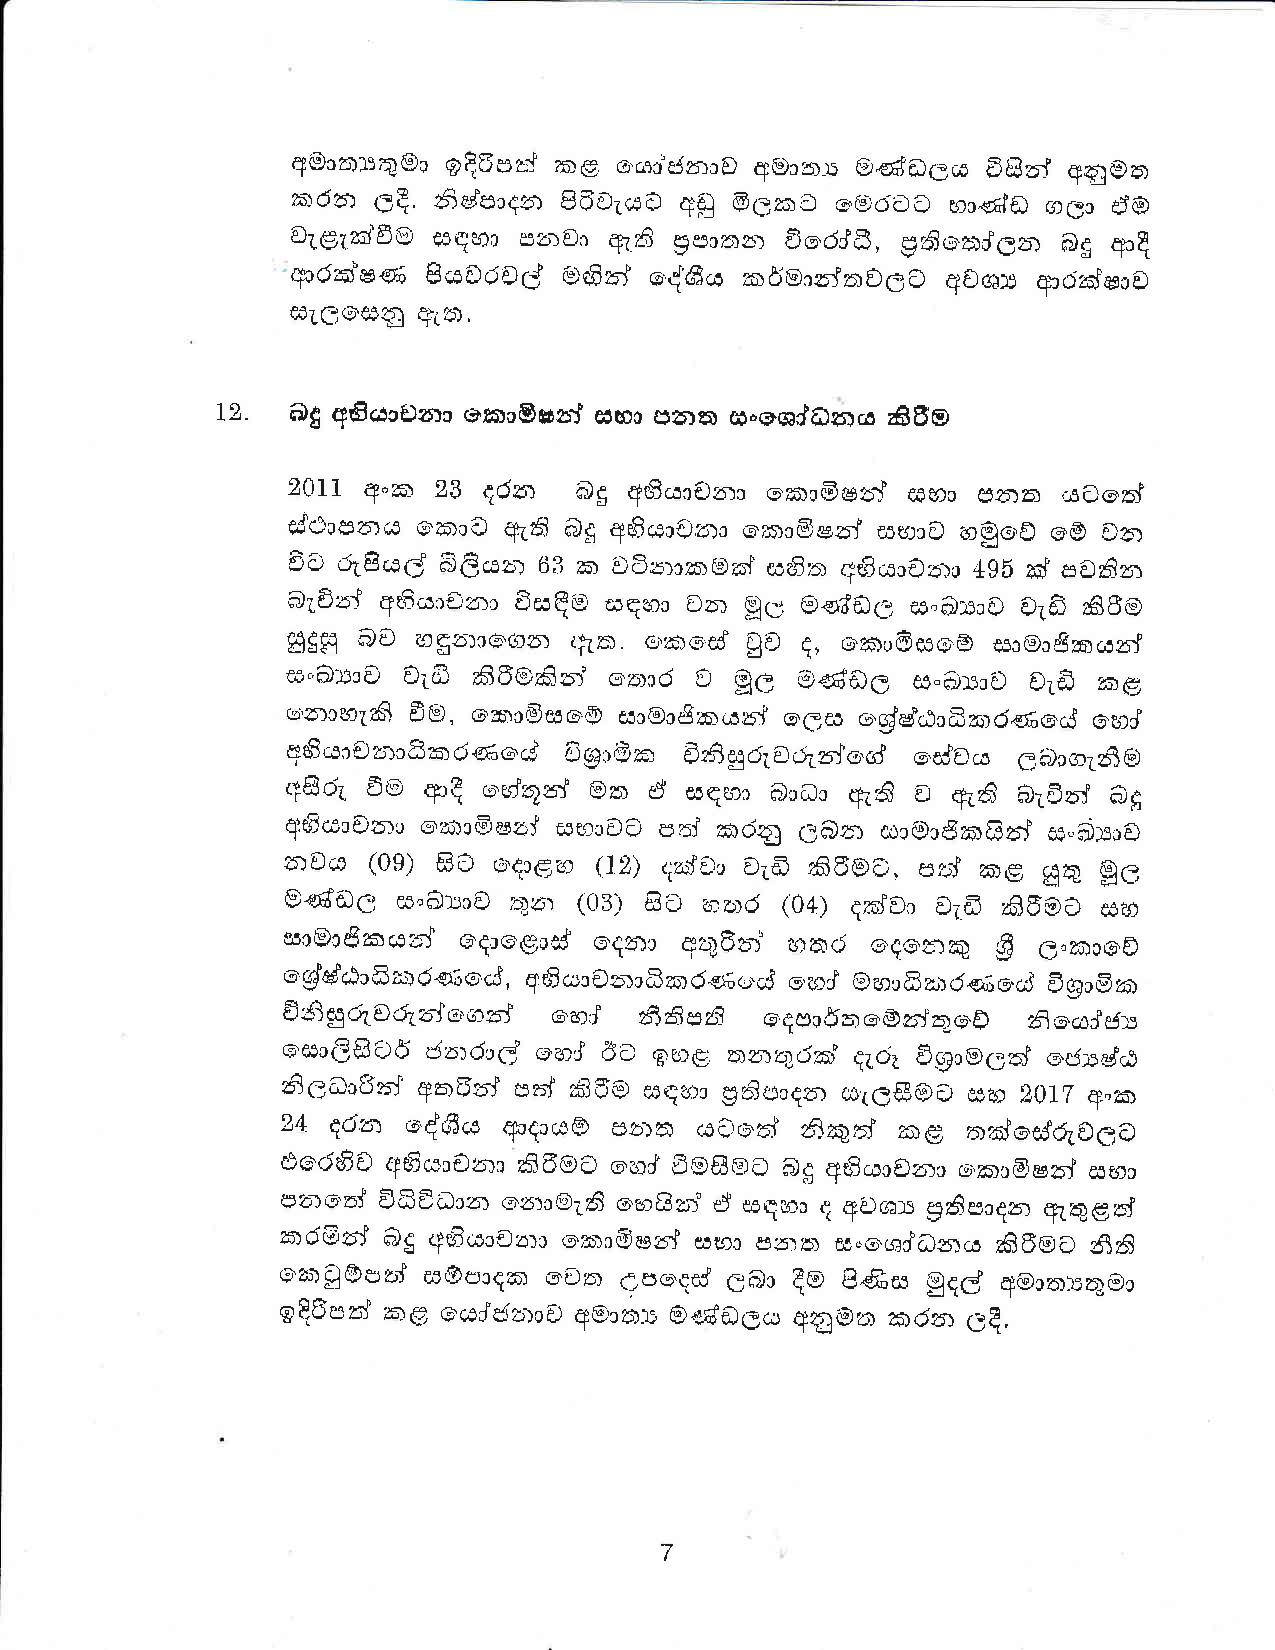 Cabinet Decision on 15.10.2019 page 007